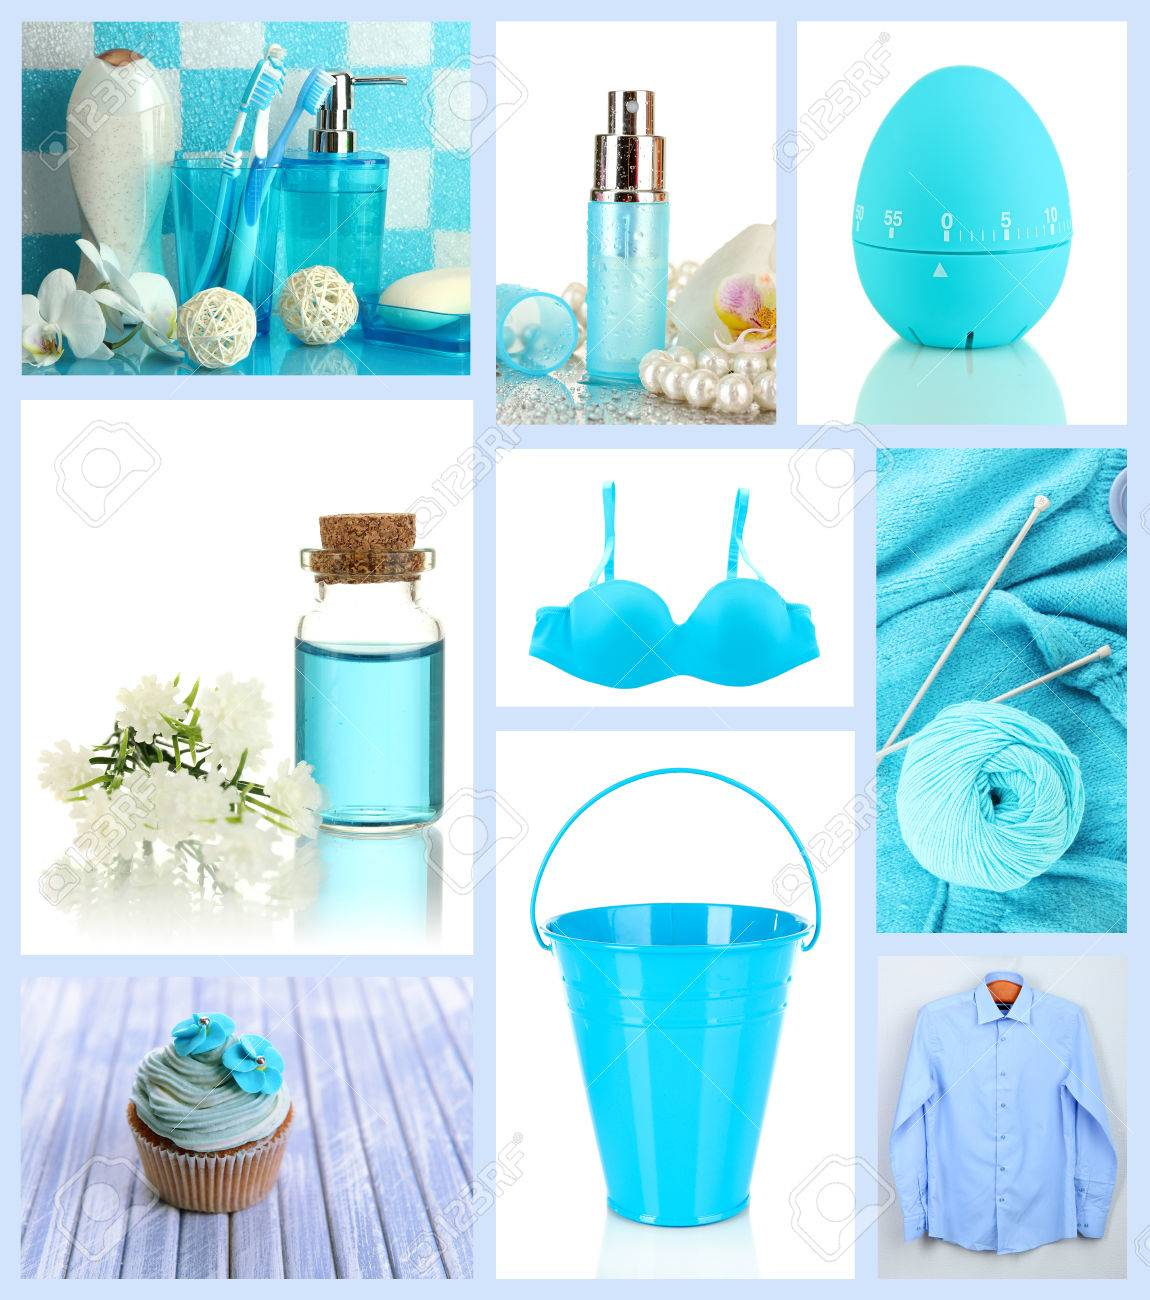 Collage of photos in blue colors Stock Photo - 26969877